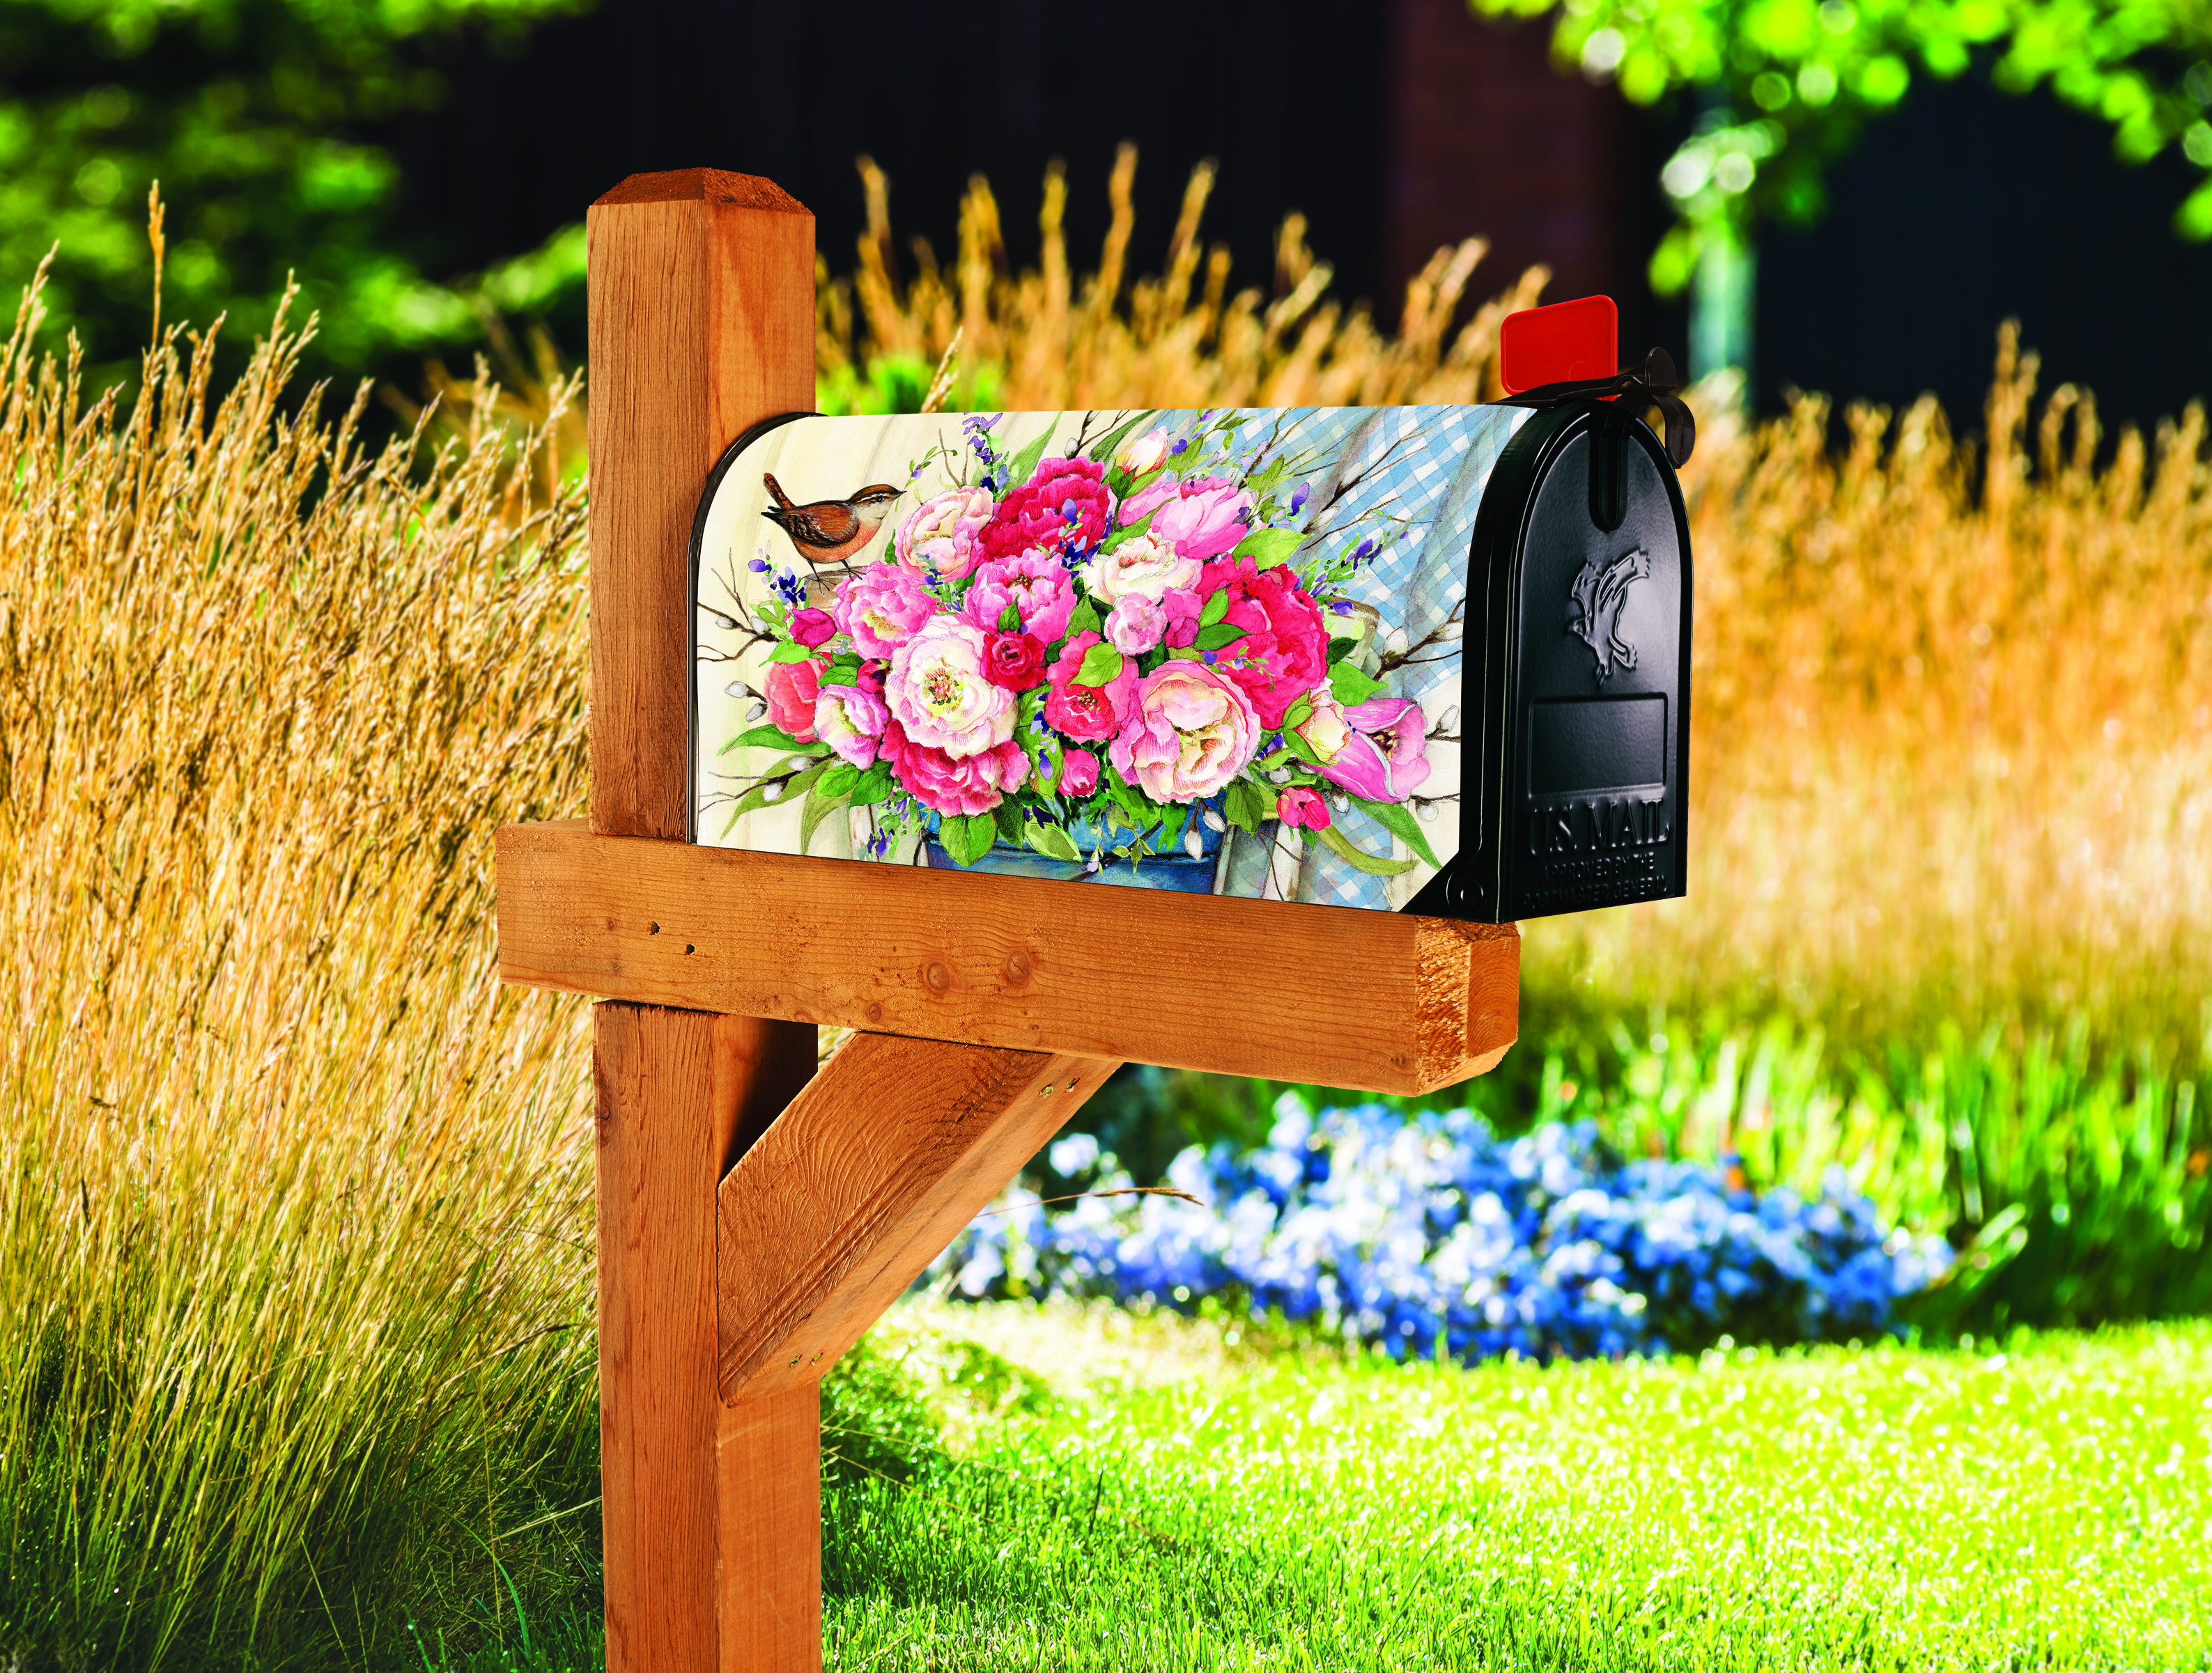 basket-full-of-peonies-mailbox-cover-flags-on-a-stick.jpg